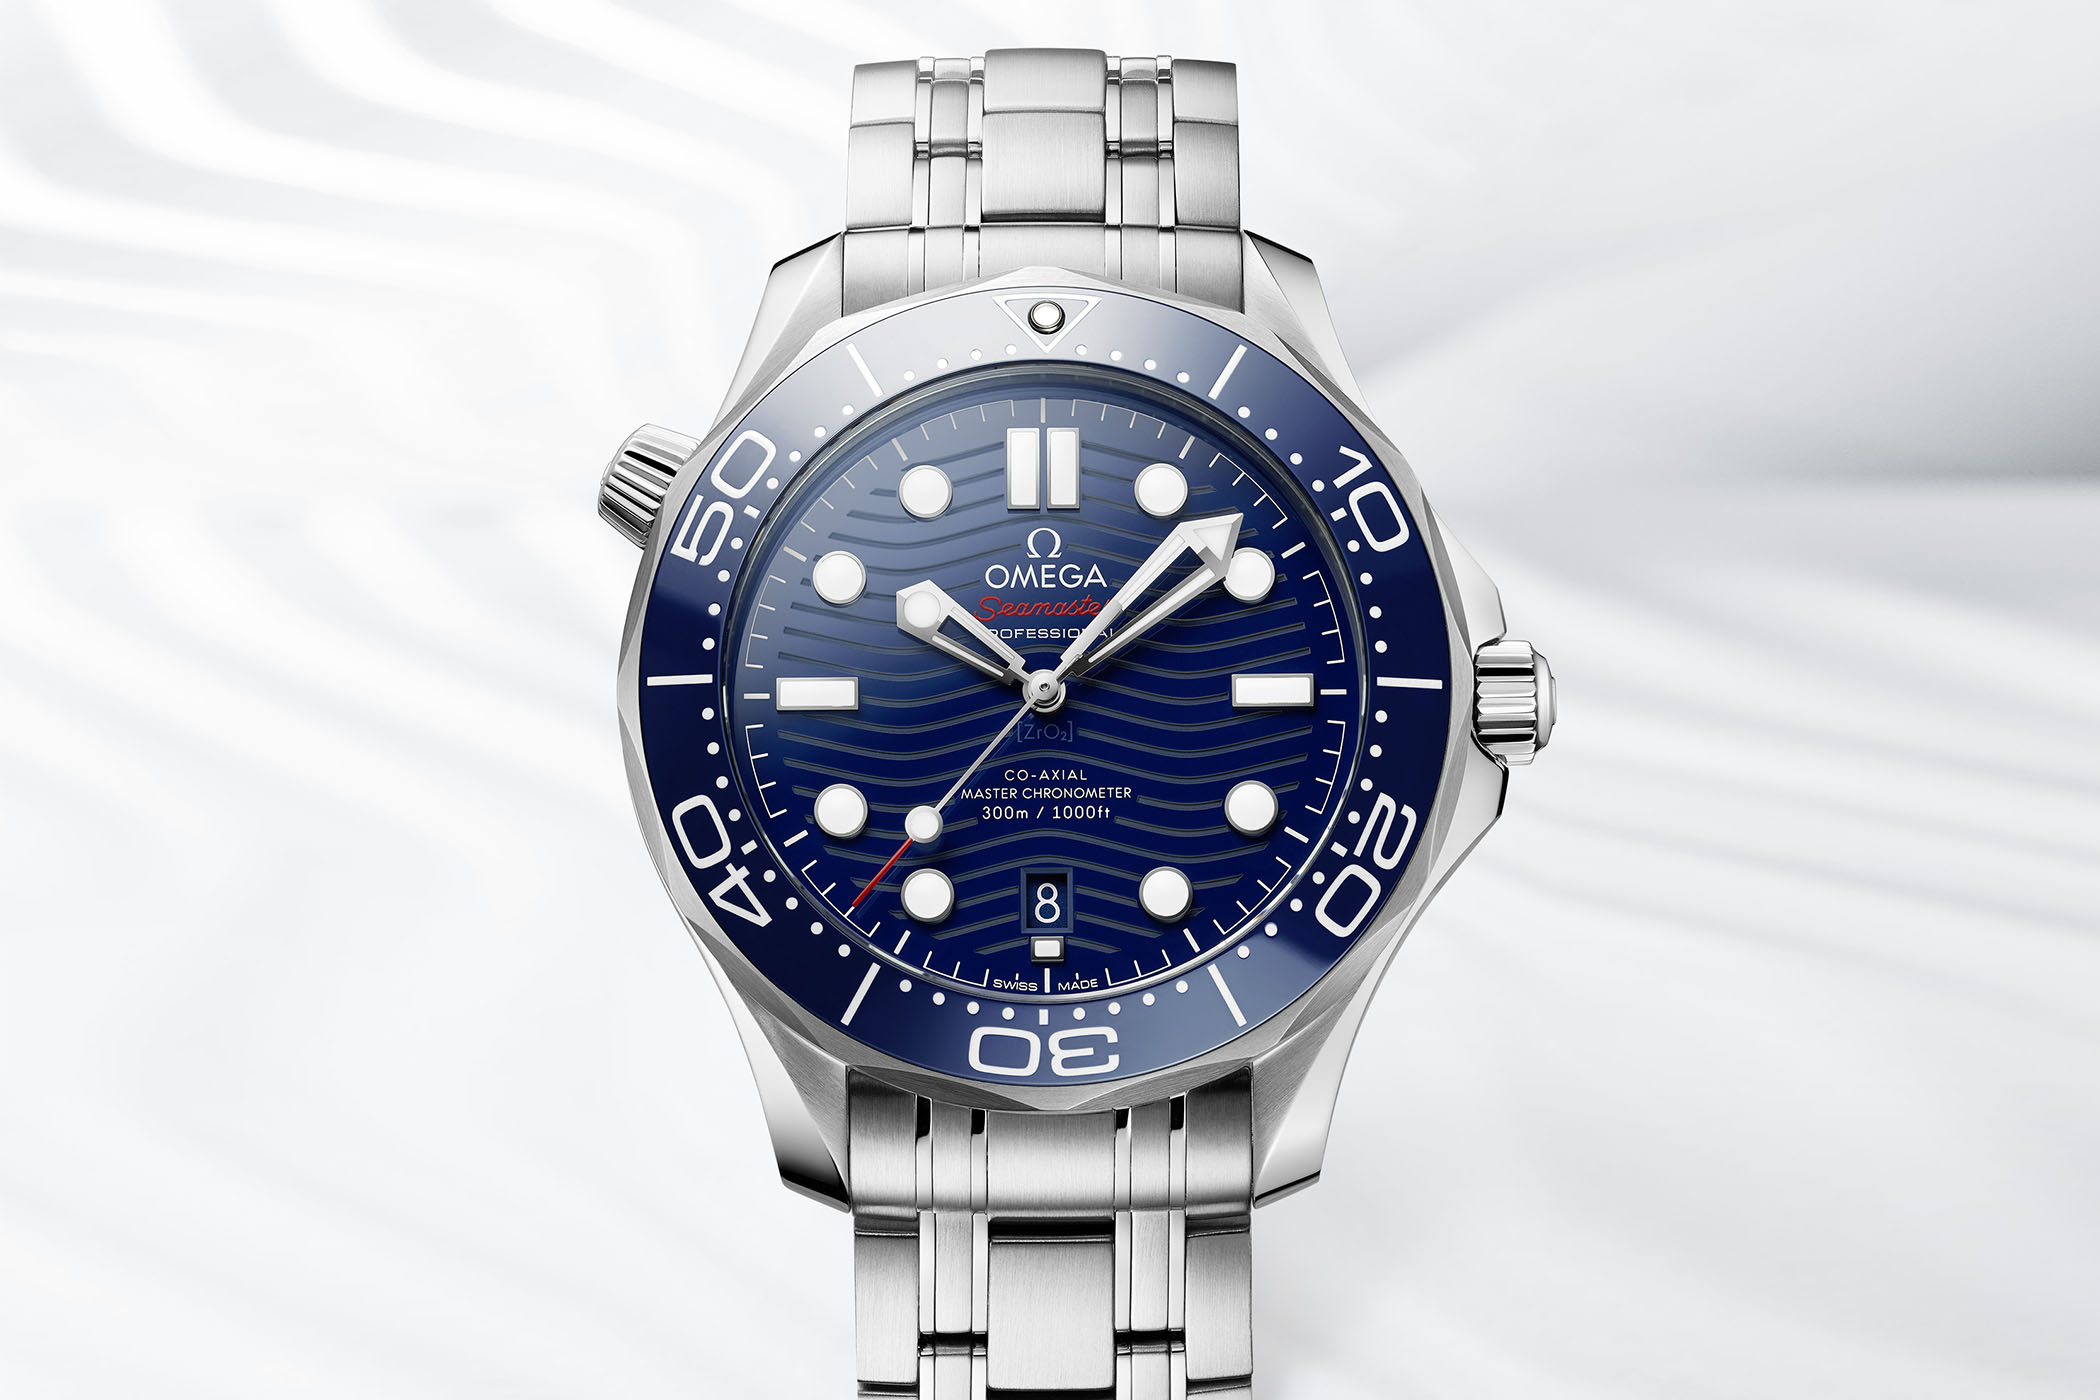 d1aefde1e524 Baselworld 2018 - The new Omega Seamaster Diver 300M (Specs   Price)